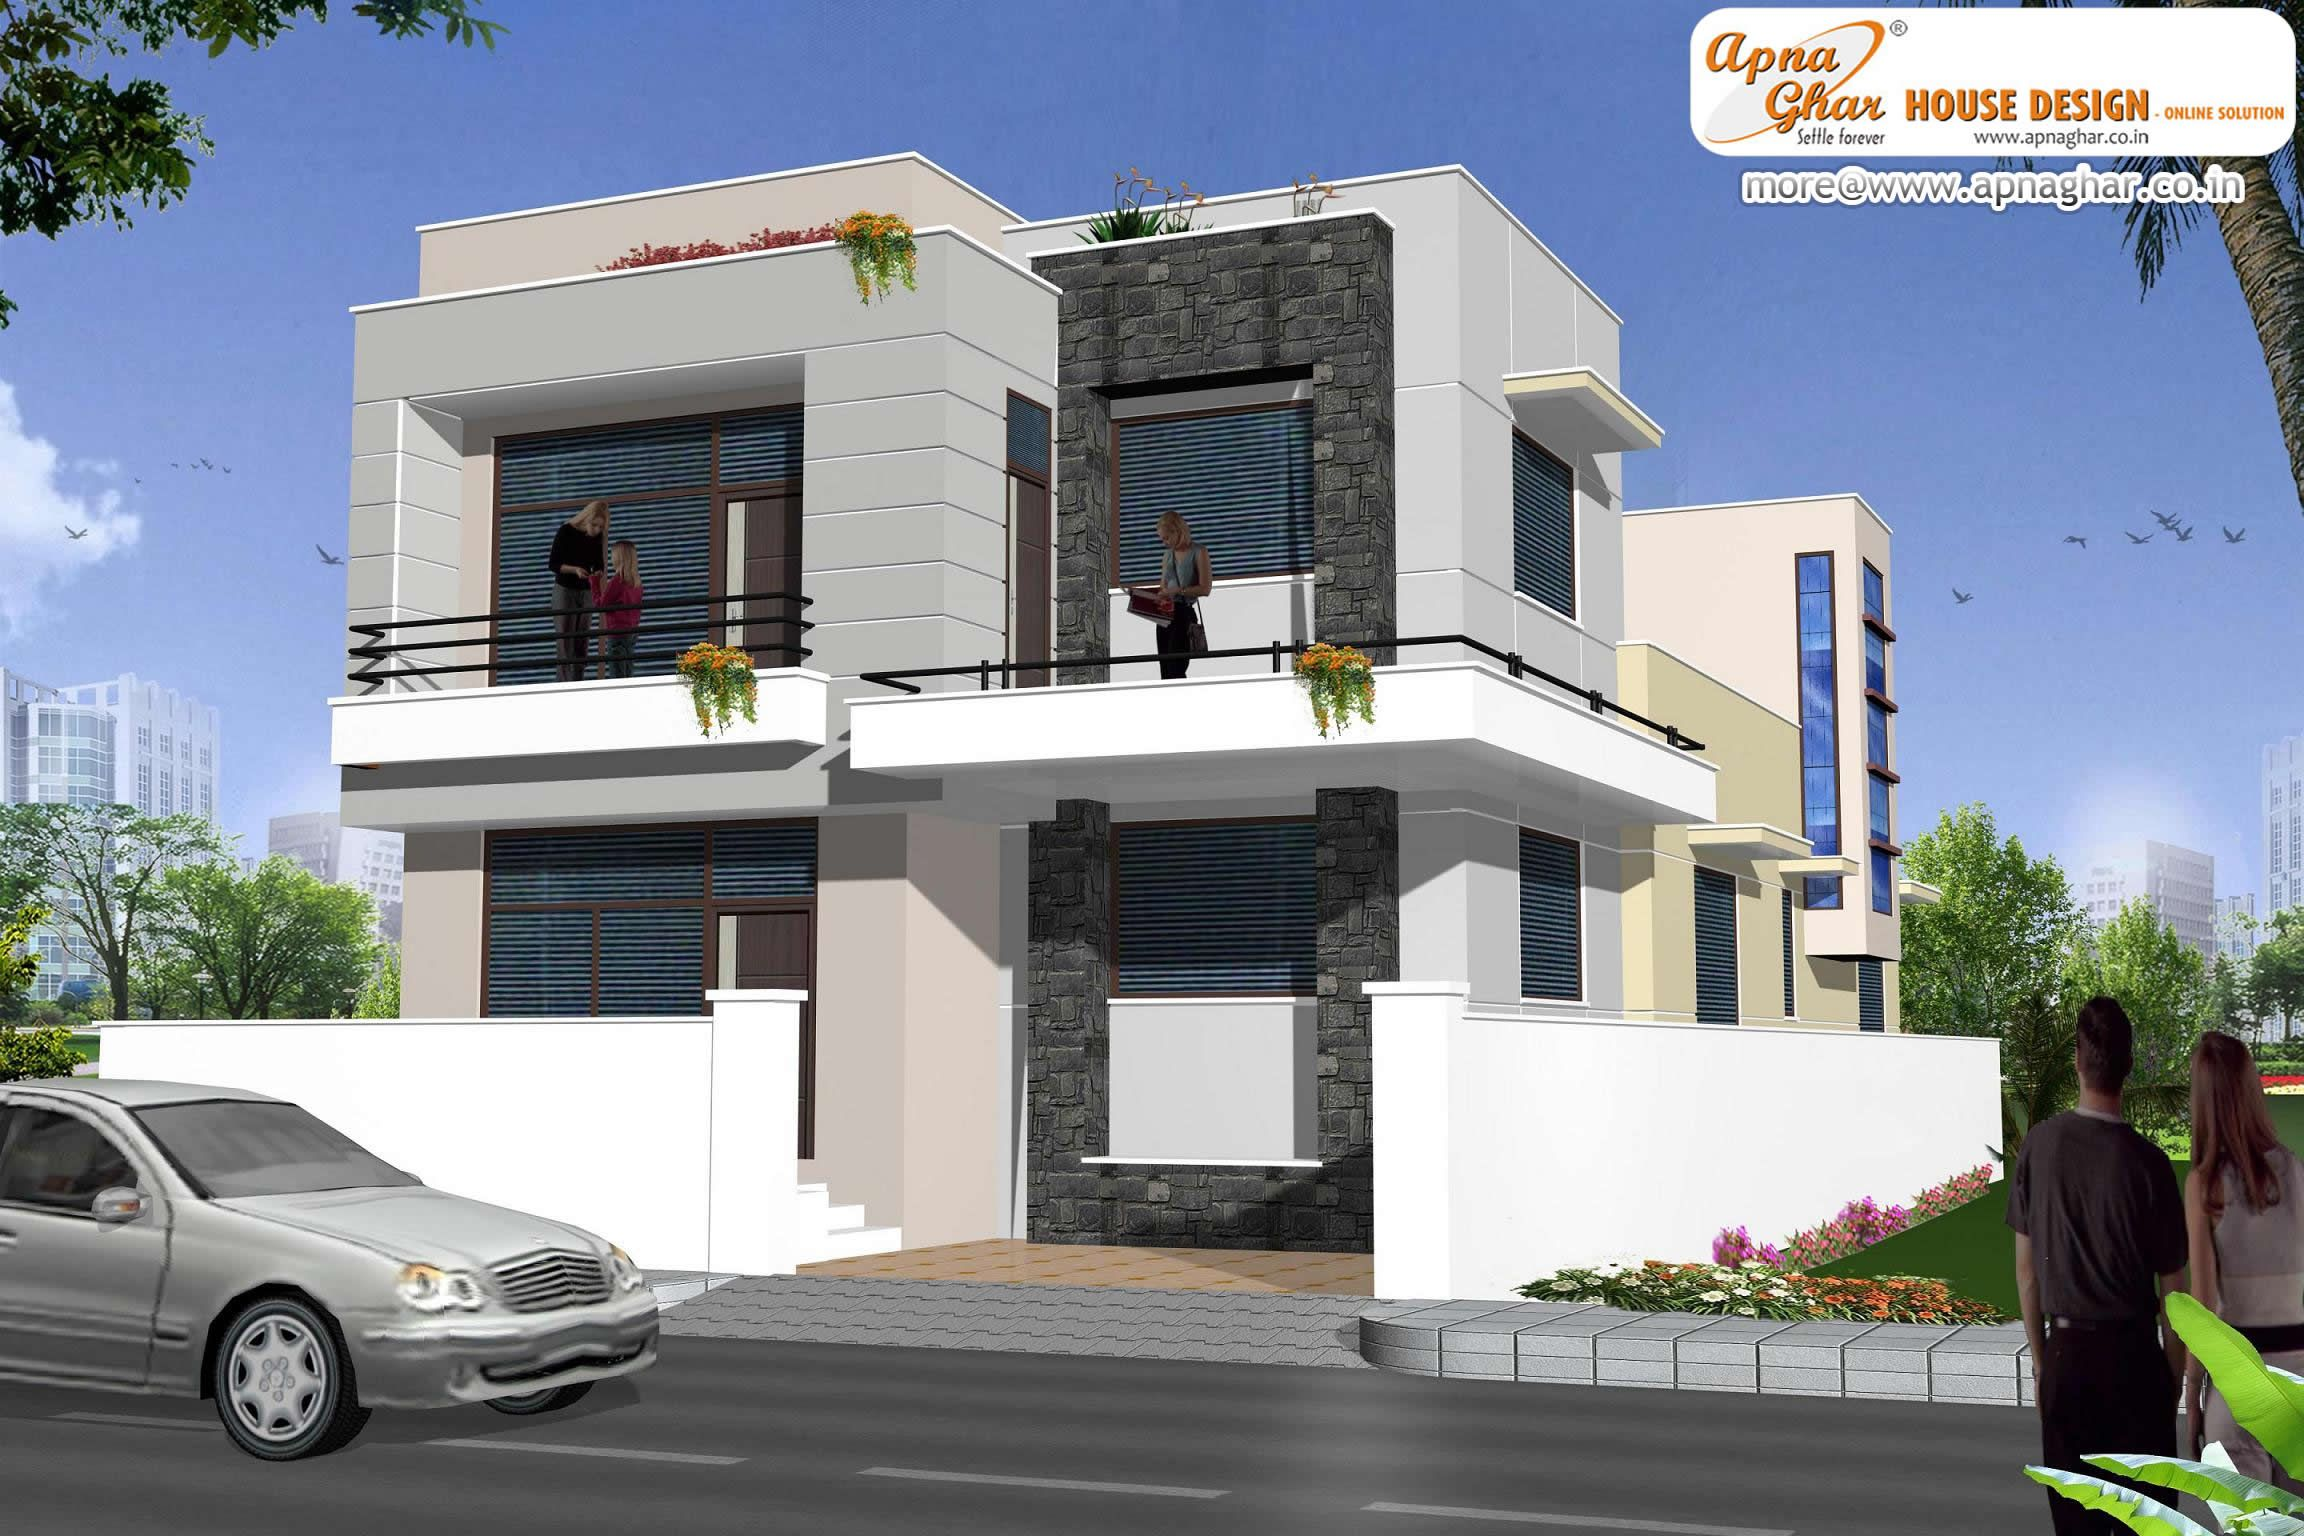 Modern duplex 2 floor house design area 198m2 9m x for Modern 2 floor house design